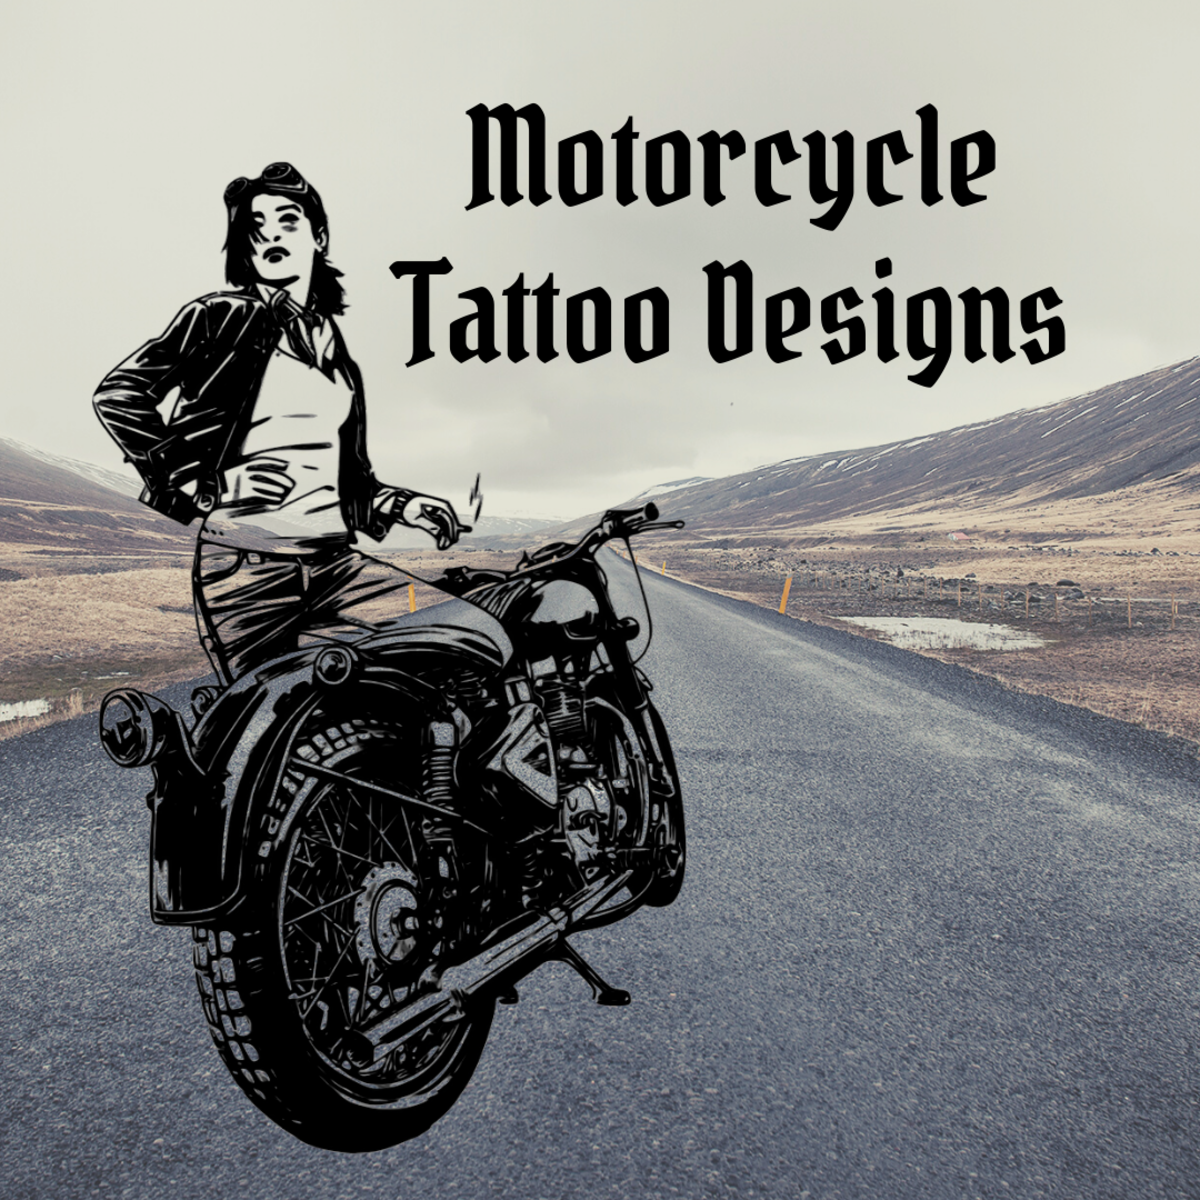 Look through some tattoos of motorcycles and bikers.